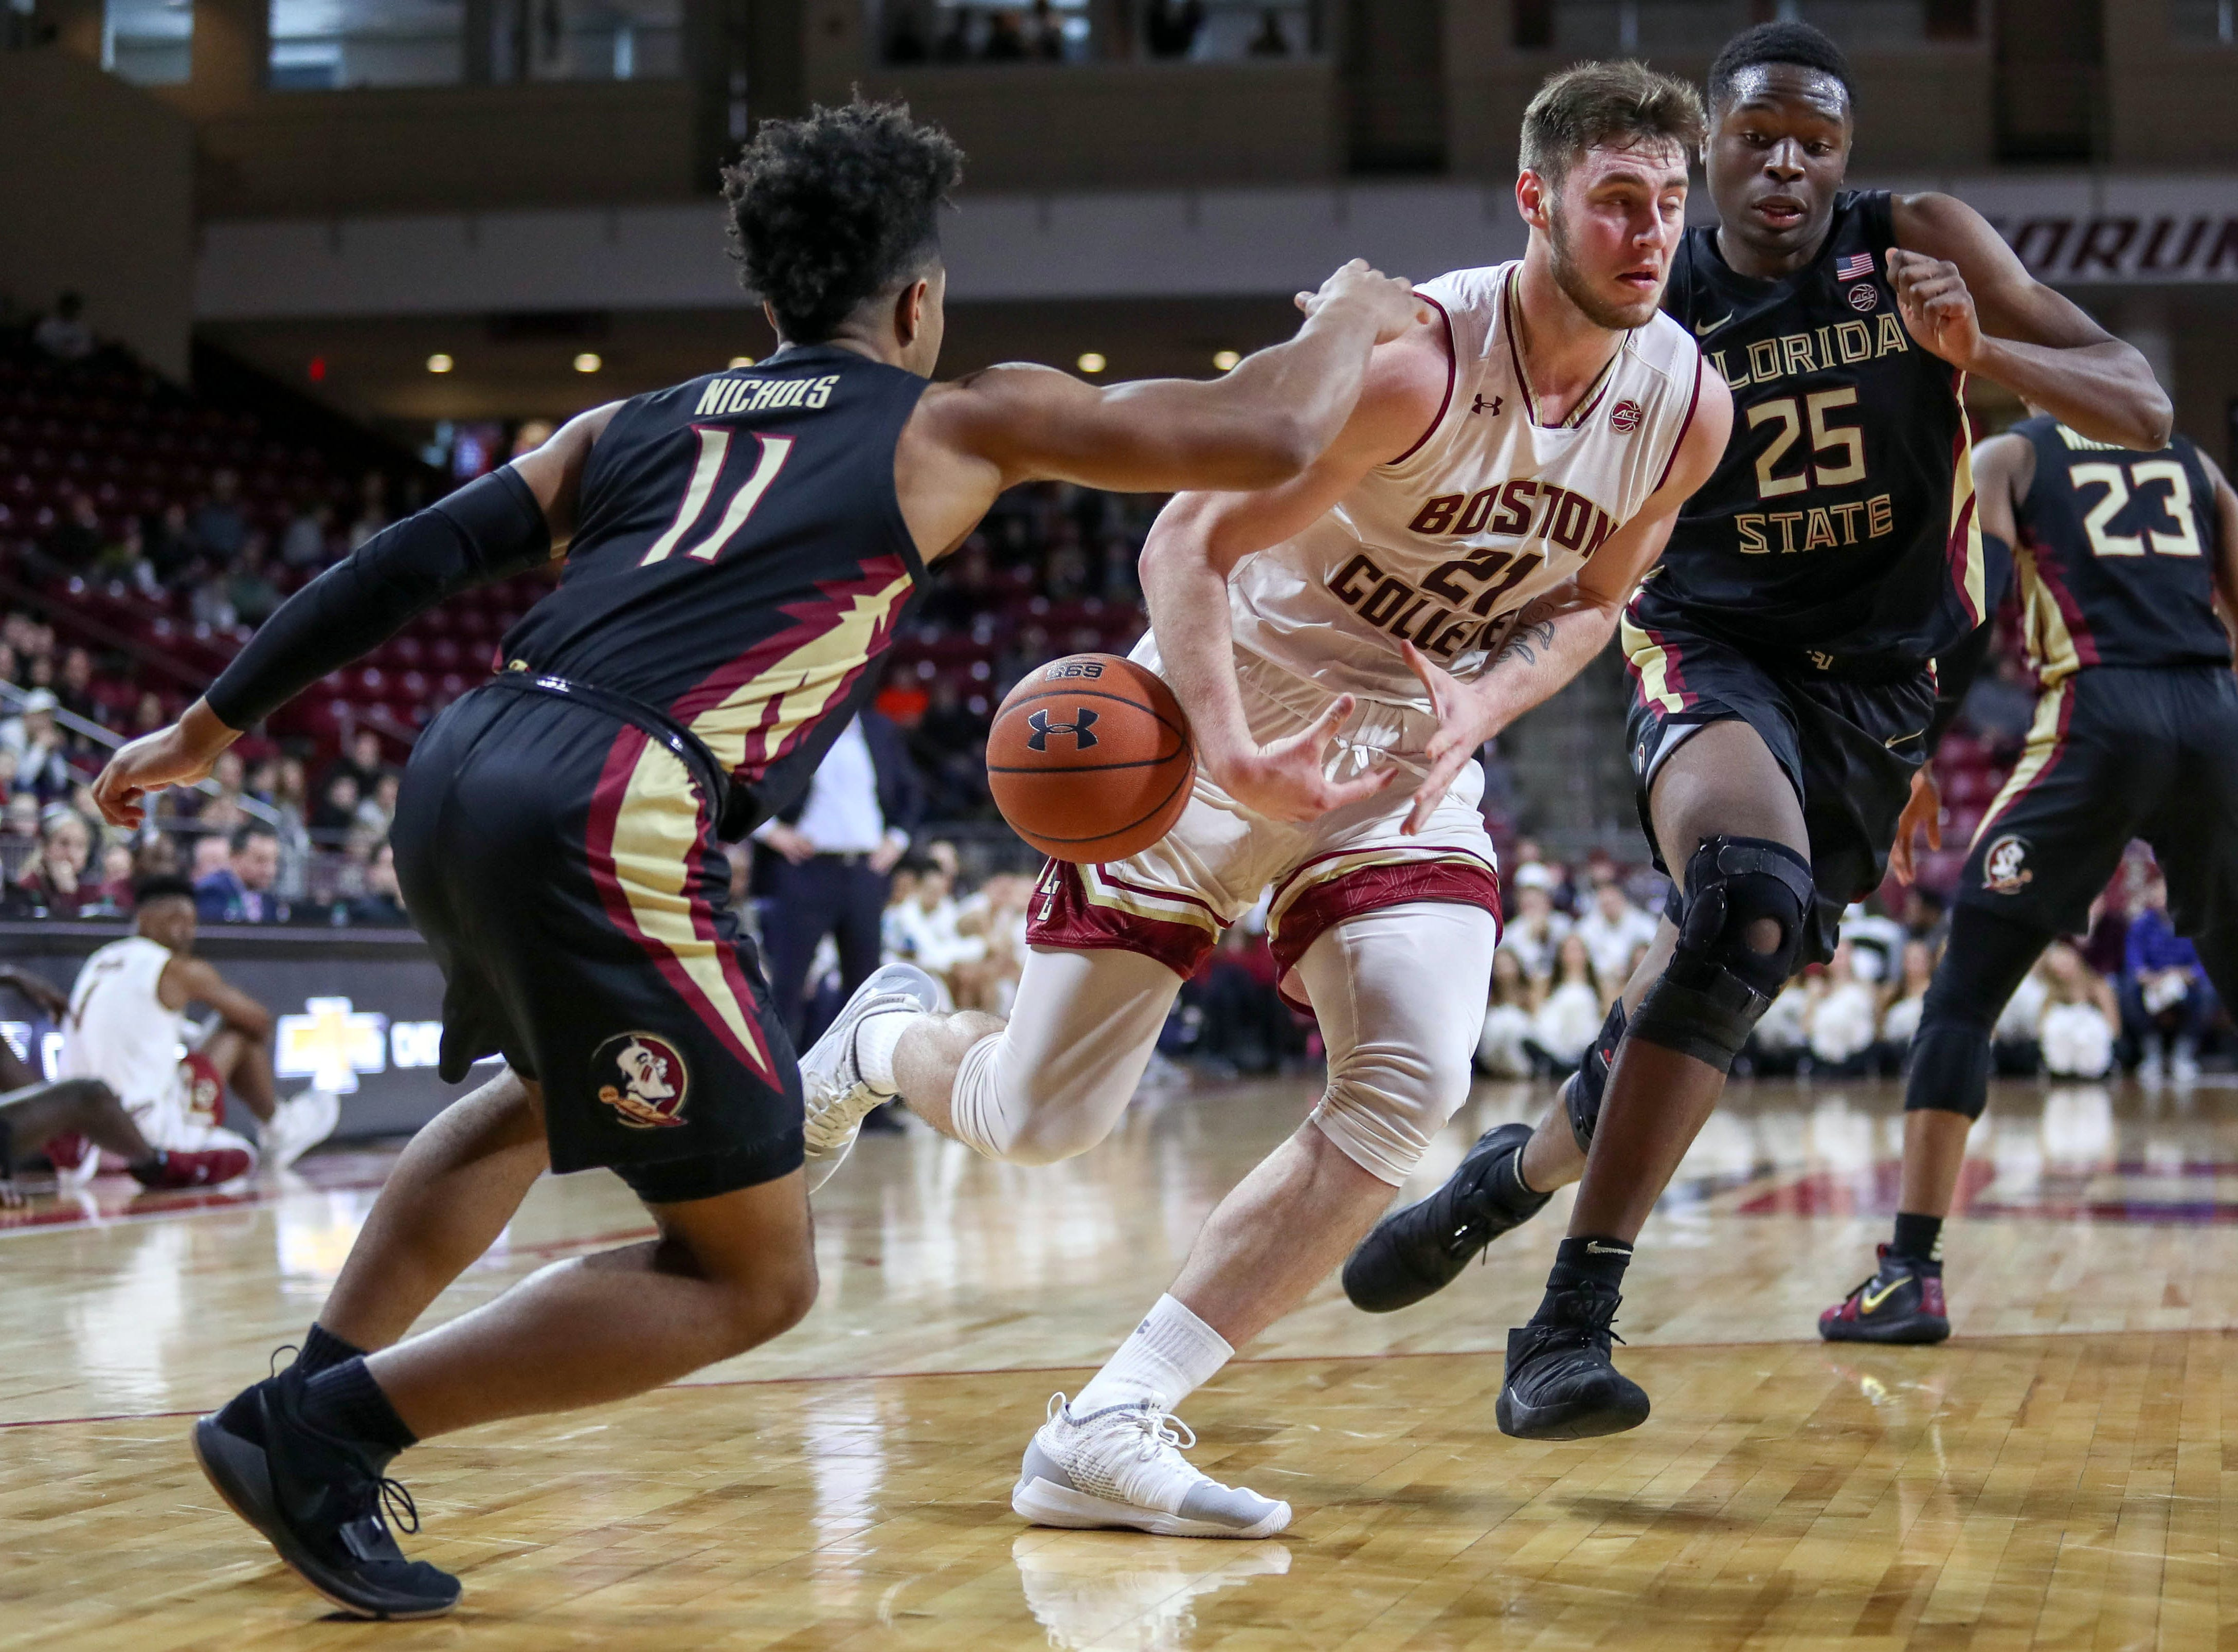 Jan 20, 2019; Chestnut Hill, MA, USA; Boston College Eagles forward Nik Popovic (21) loose the ball defended by Florida State Seminoles guard David Nichols (11) during the first half at Conte Forum. Mandatory Credit: Paul Rutherford-USA TODAY Sports